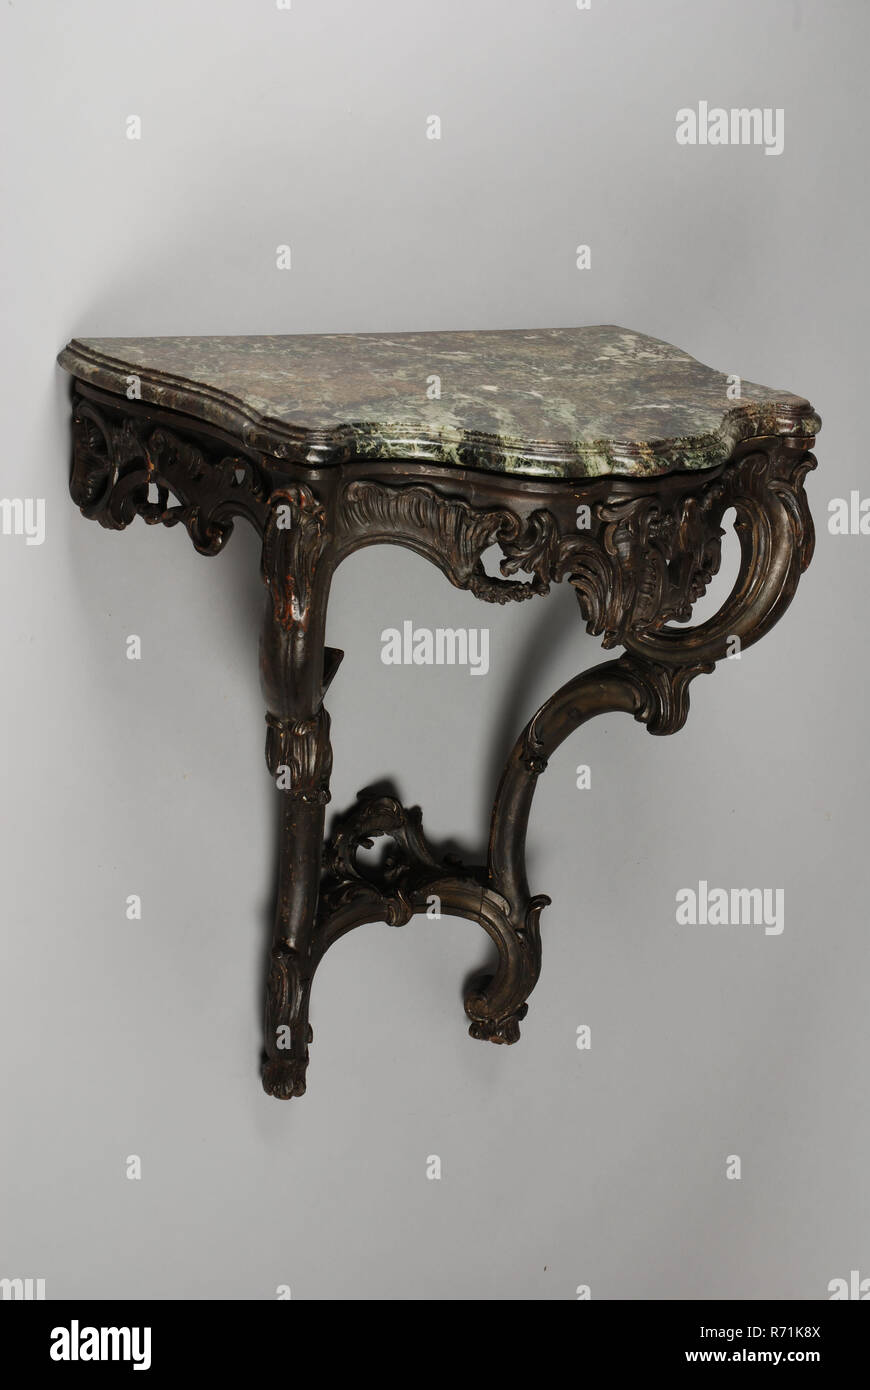 Rococo Console Or Penant Table Console Table Penant Table Table Furniture Interior Design Wood Lime Wood Oak Marble Stone Paint Iron Olive Green Painted With Green Marble Top Rococo Stock Photo